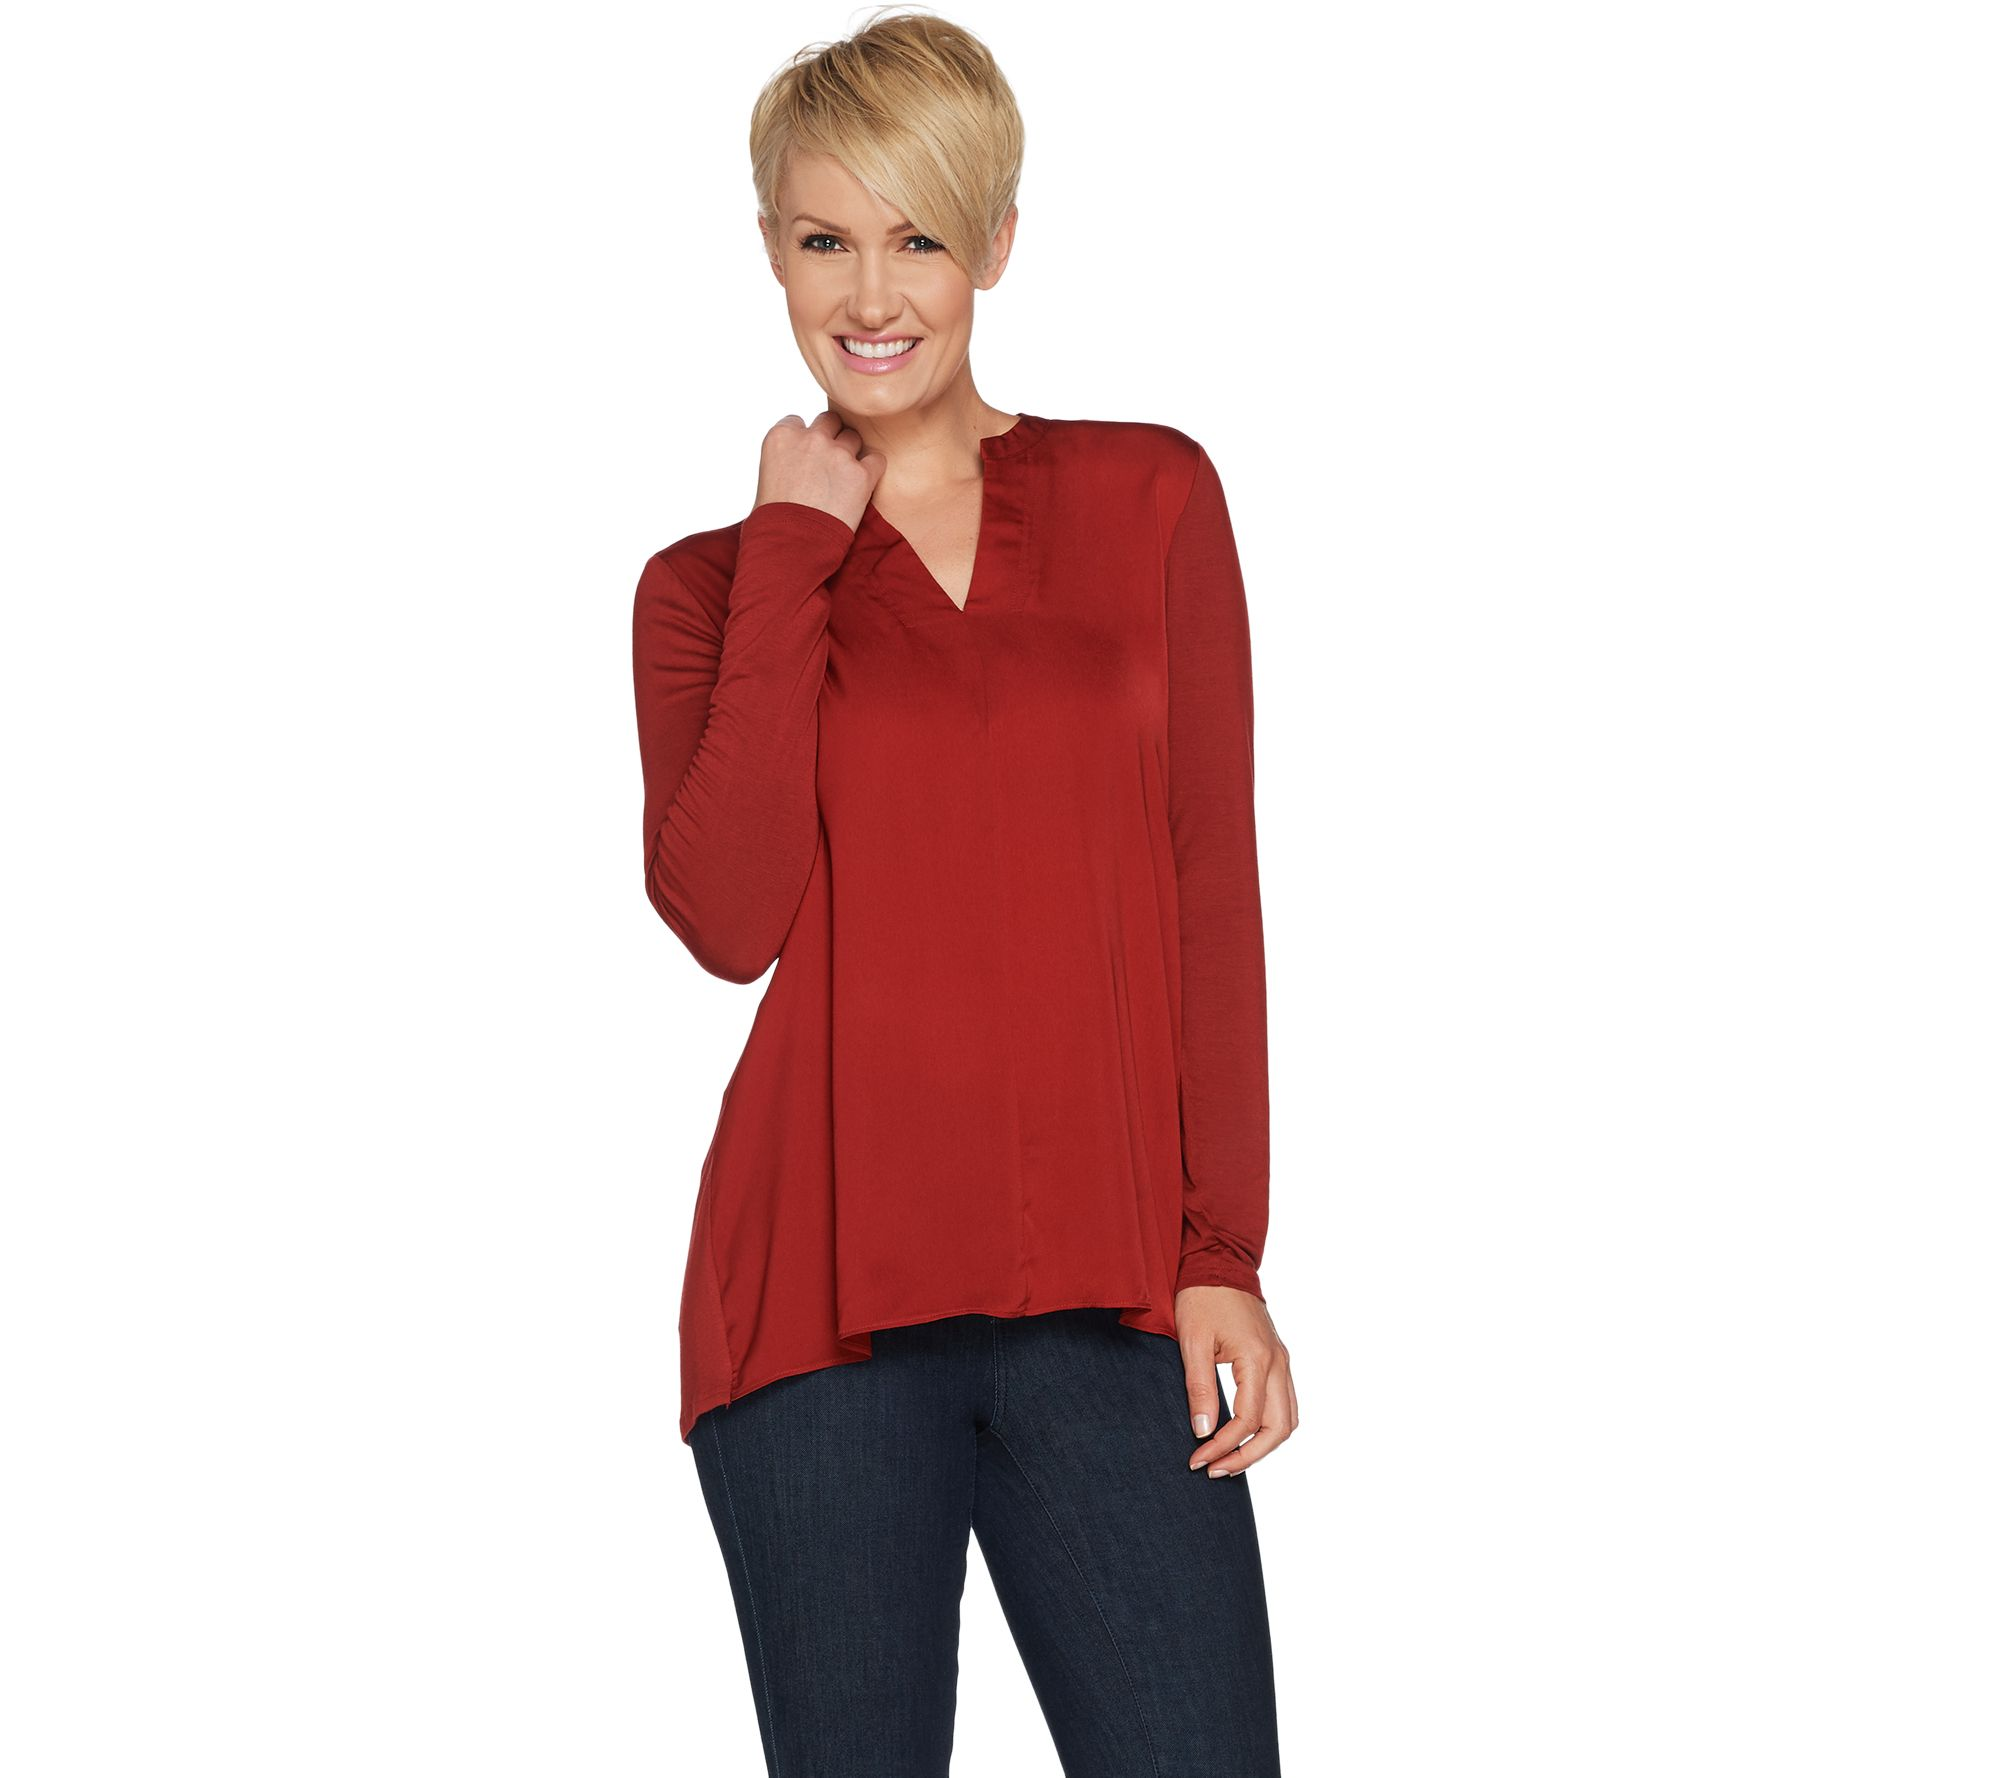 Lisa Rinna Collection — Blouses & Tops — Fashion — QVC.com